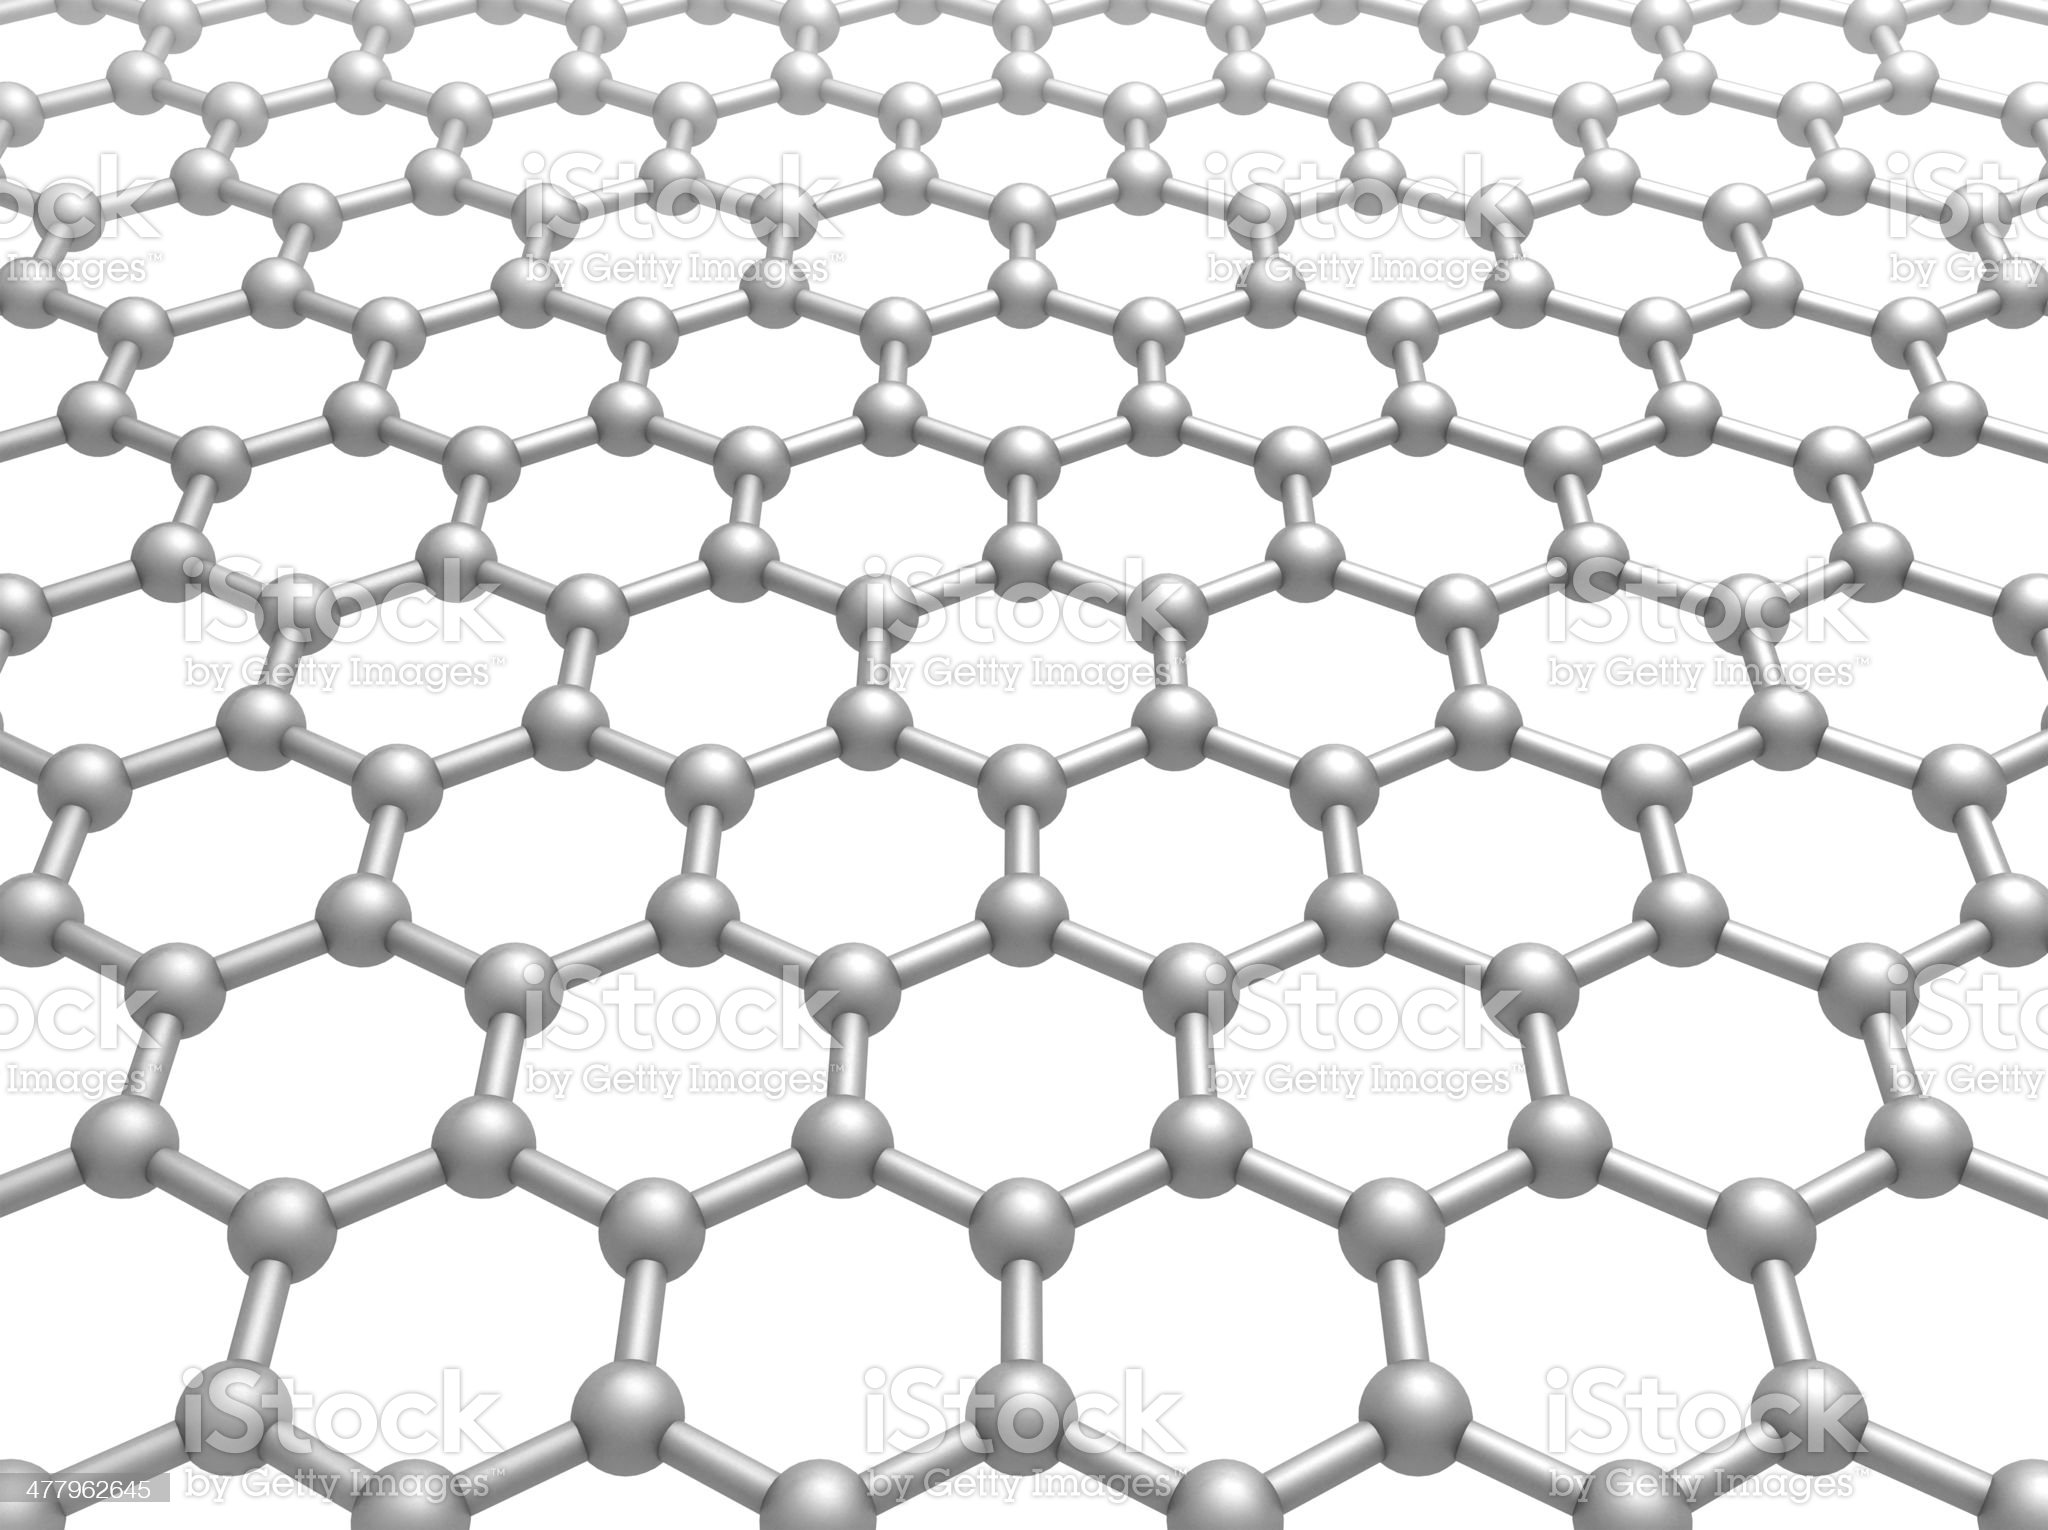 Graphene layer structure schematic model. 3d illustration isolated on white royalty-free stock photo